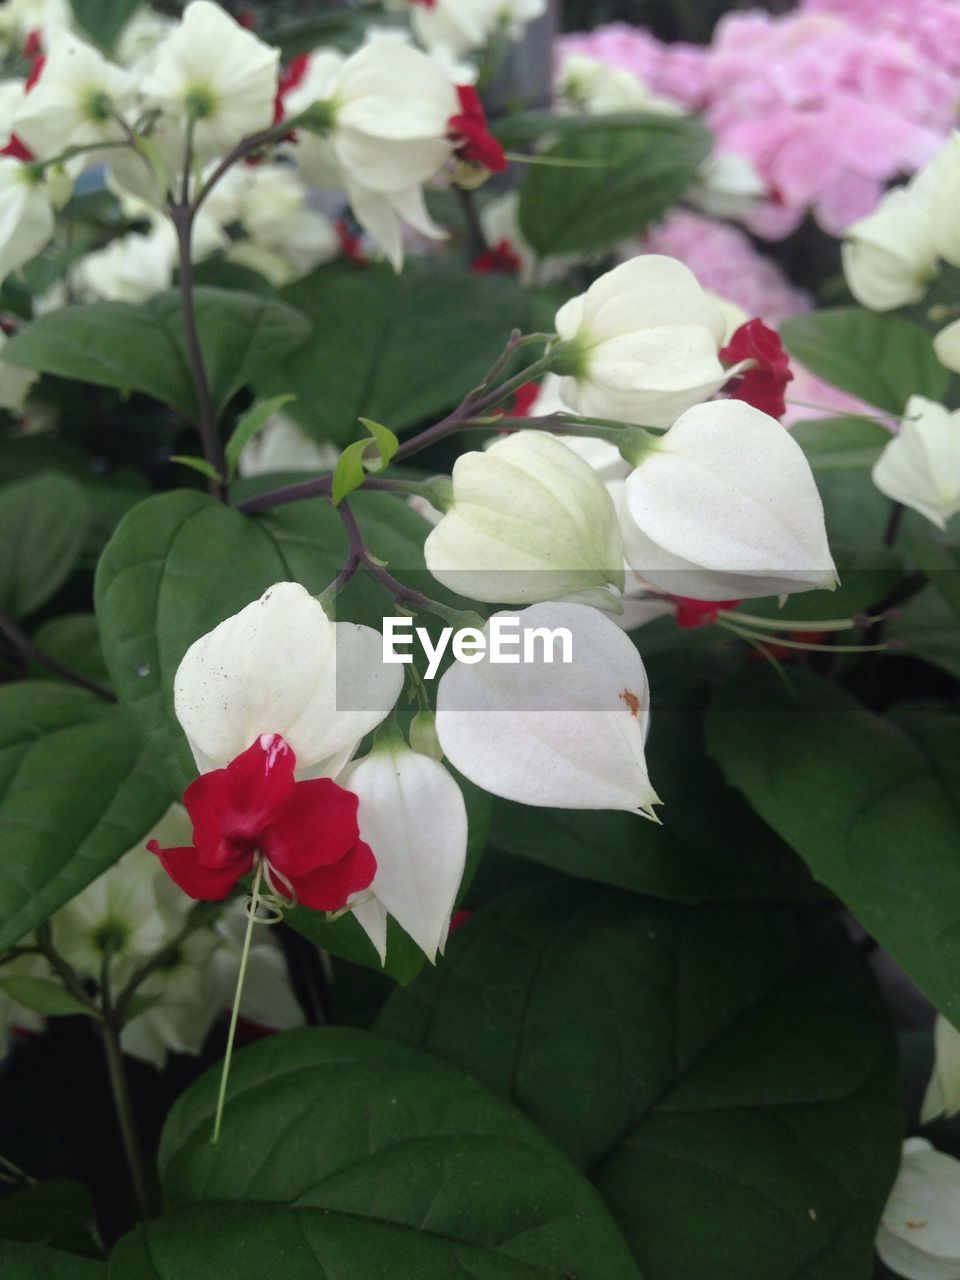 flower, growth, petal, beauty in nature, nature, freshness, leaf, fragility, white color, plant, no people, green color, blooming, outdoors, flower head, close-up, day